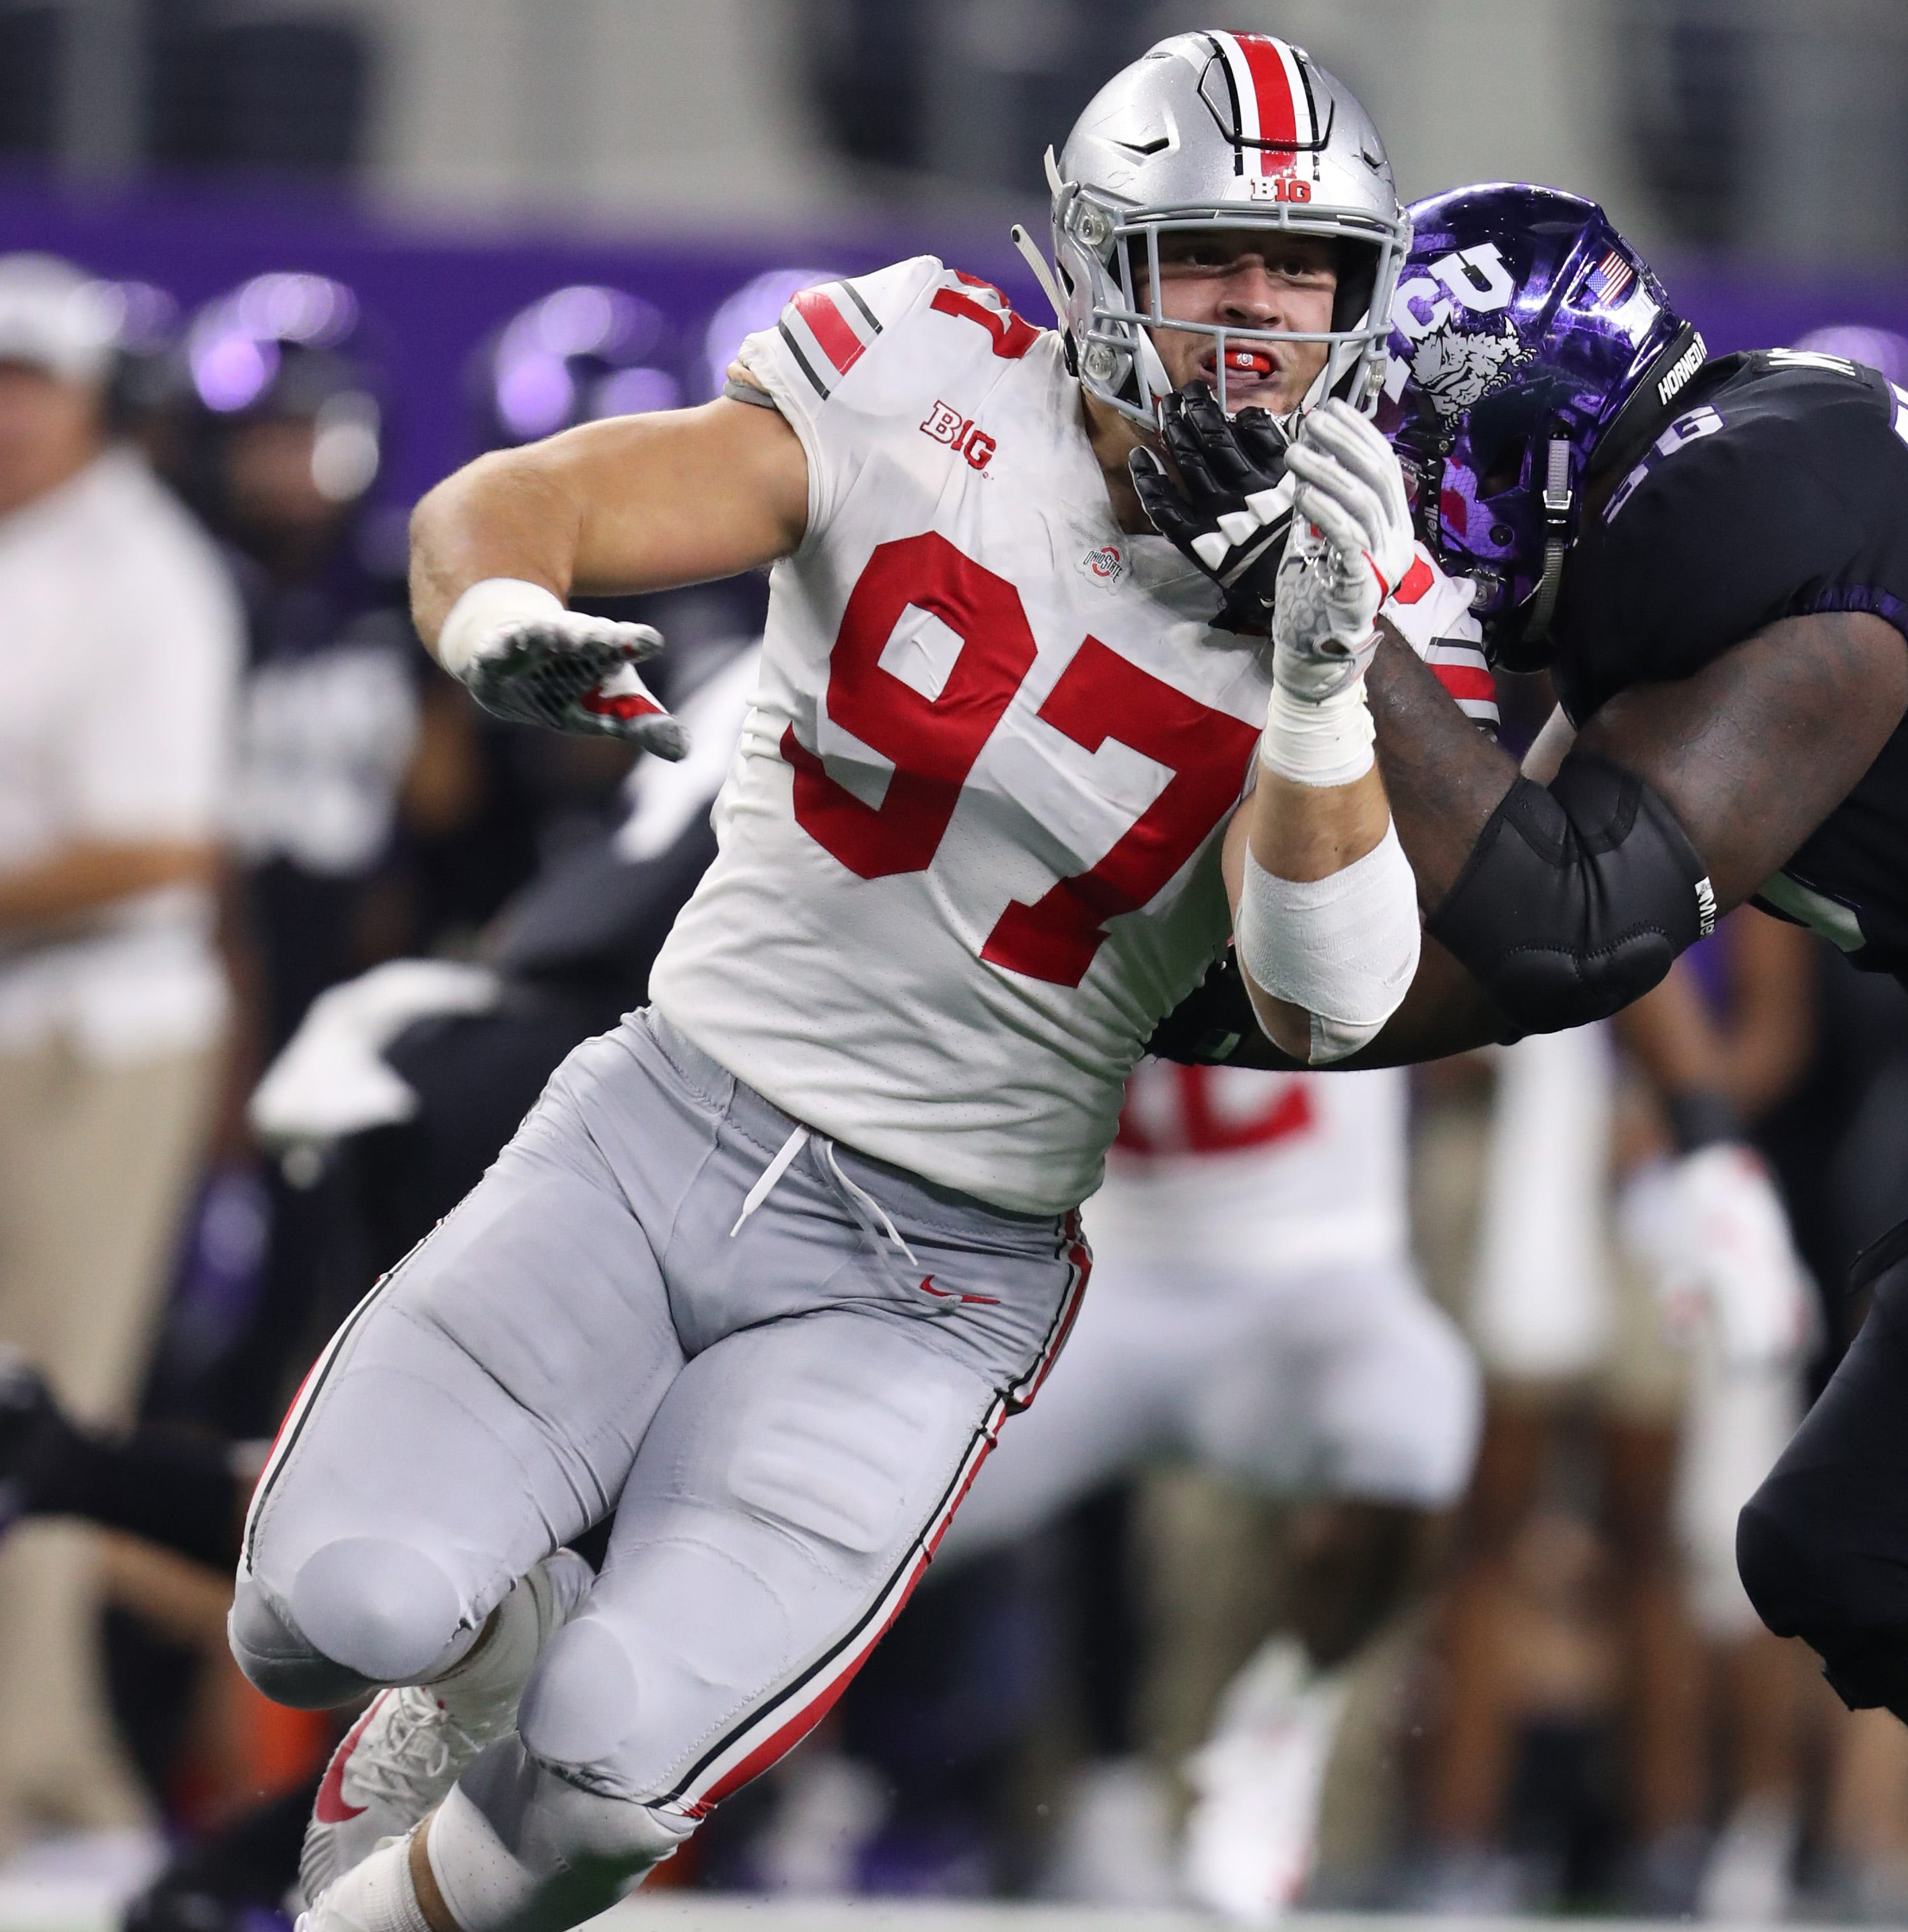 McCurdy: Ohio State's Nick Bosa did right thing for Nick Bosa